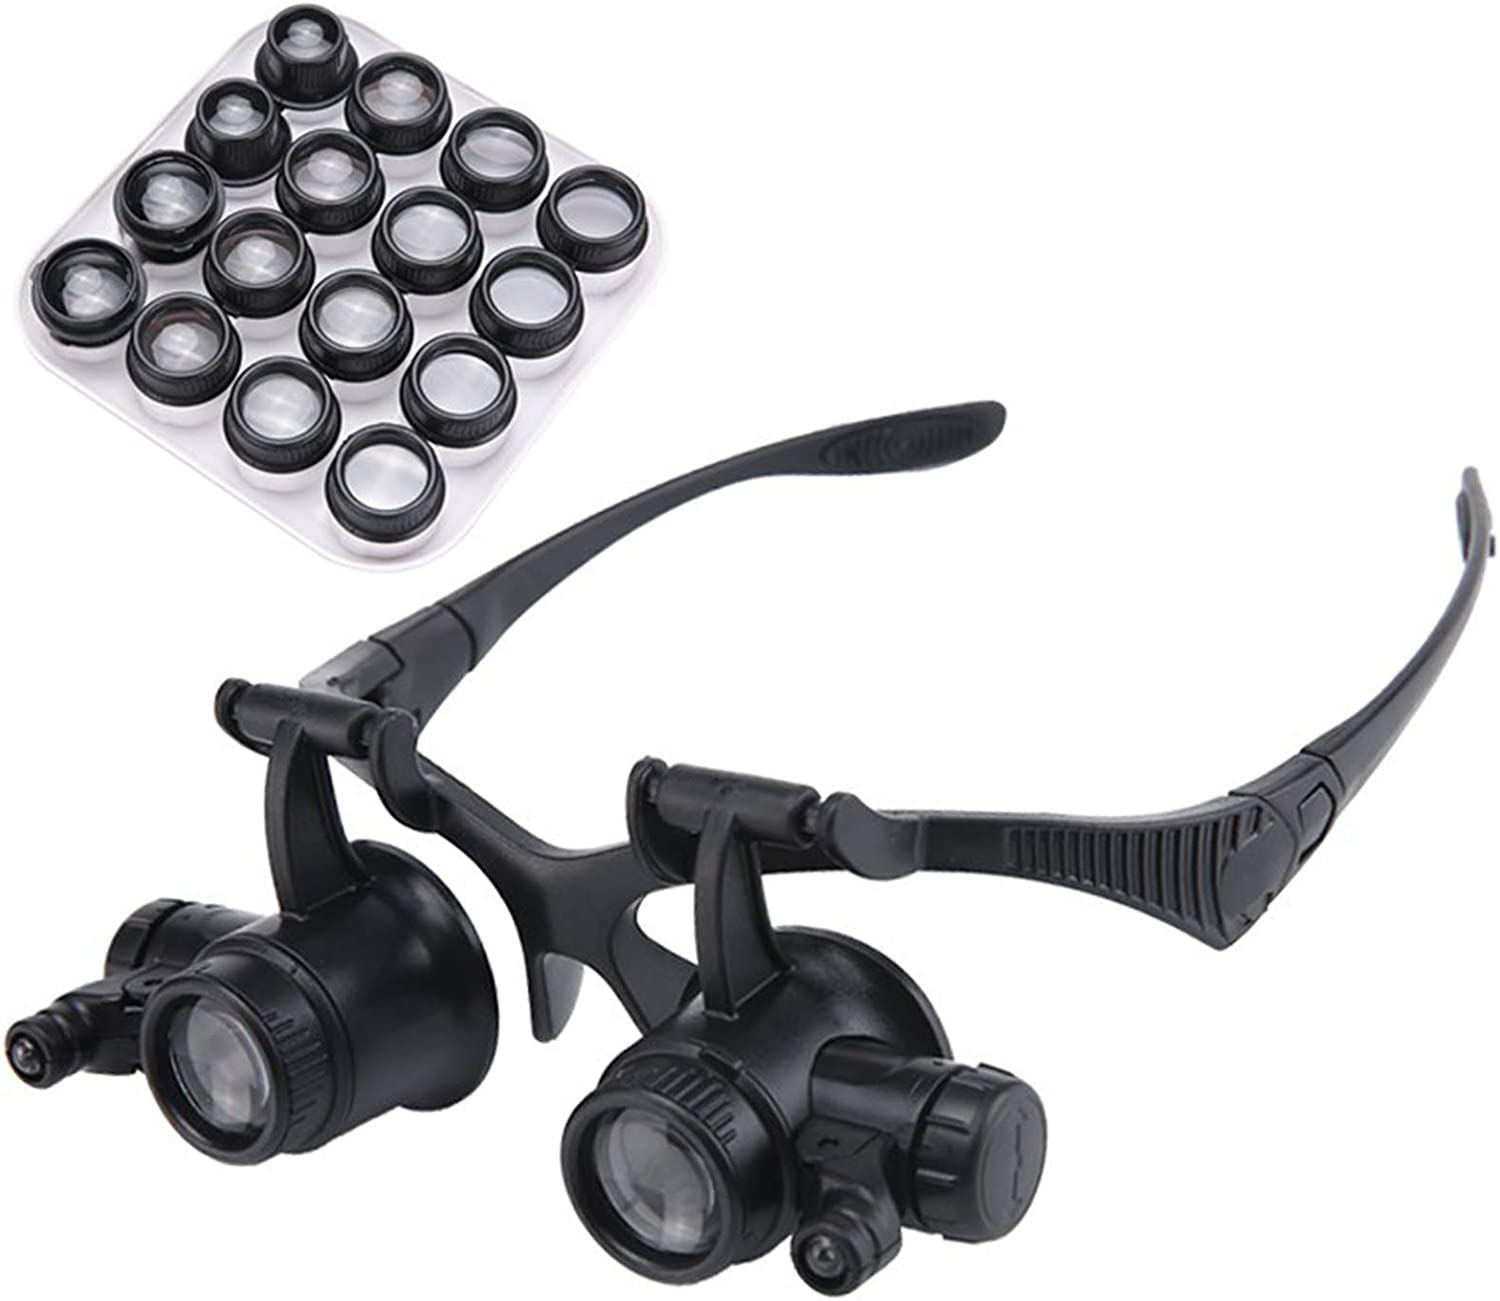 Portable Super intense SALE Headband Magnifier Max 72% OFF with Magnifie LED Light Illuminated